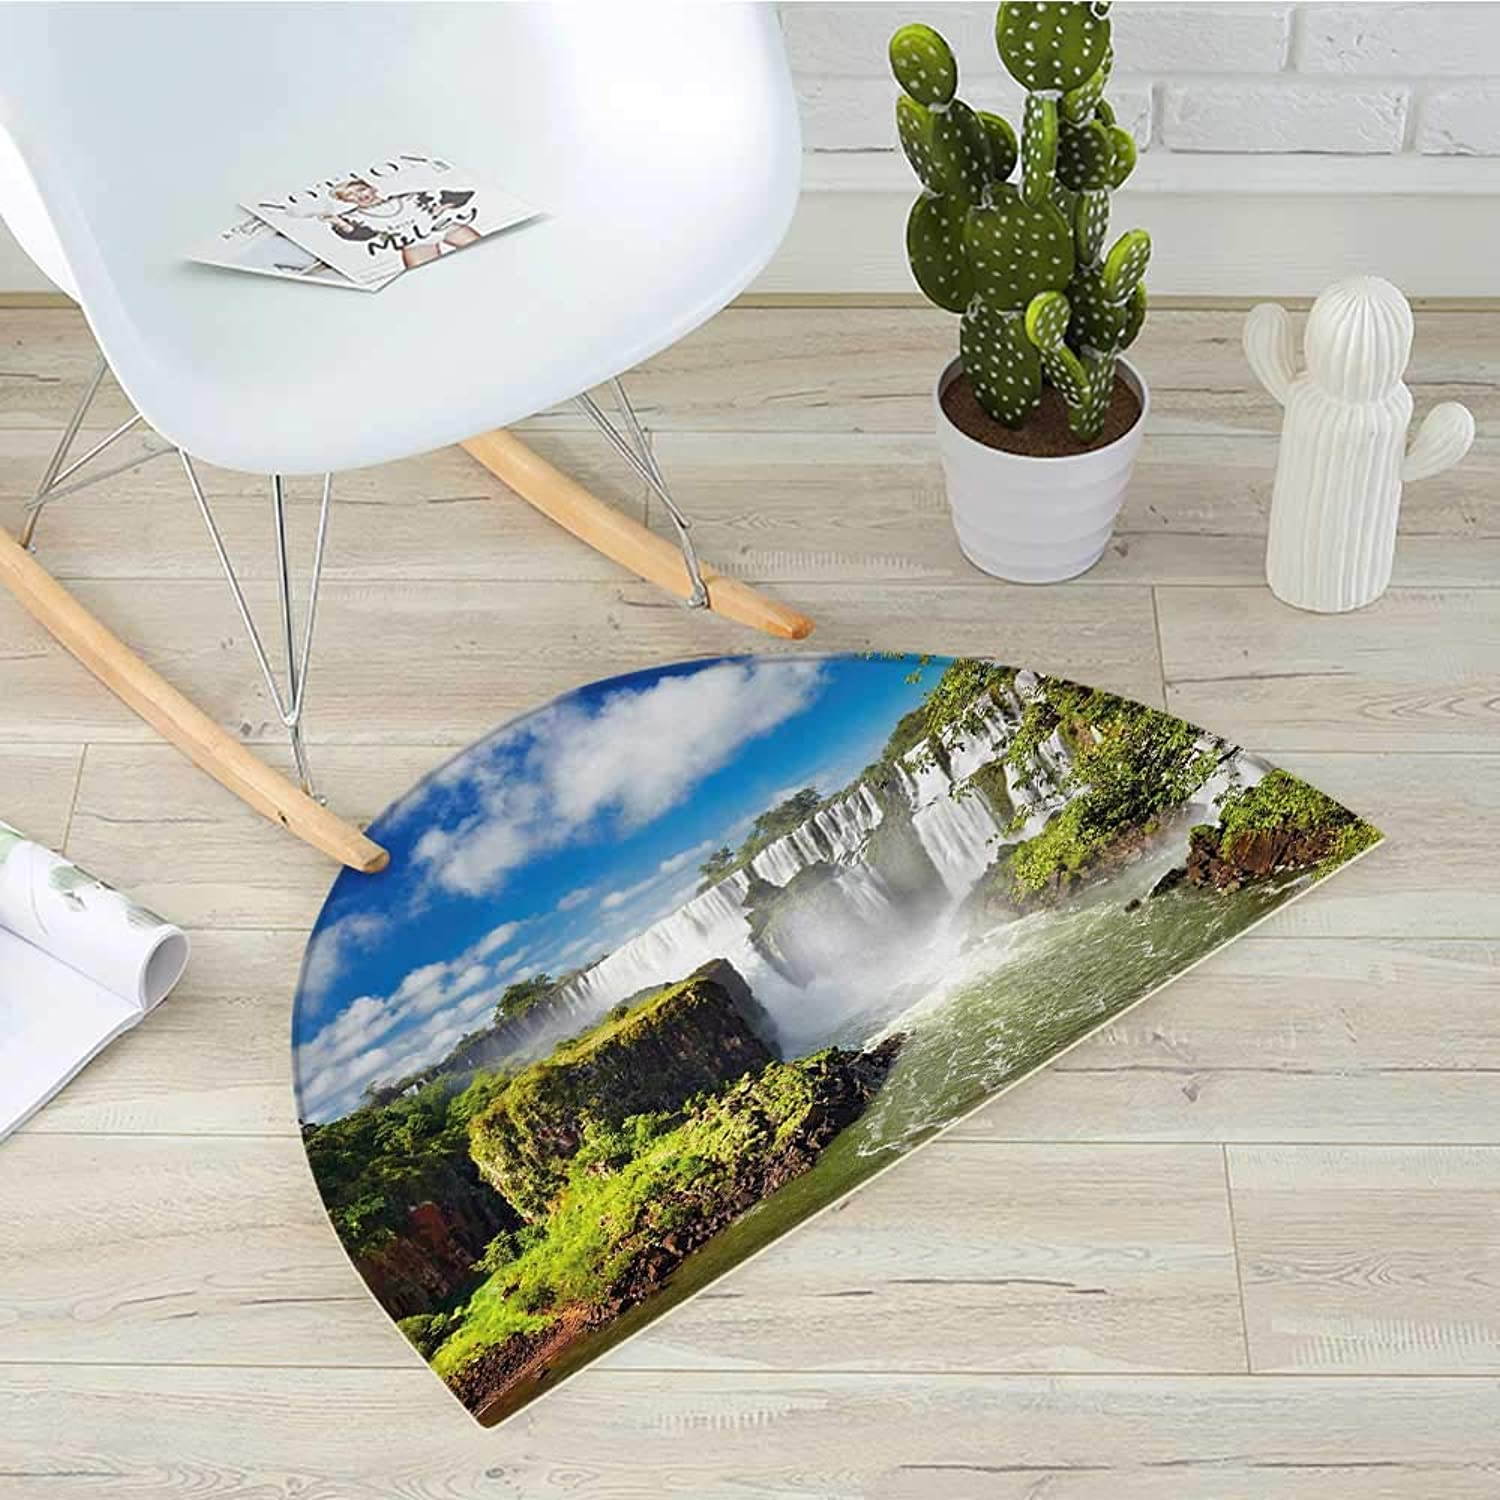 Landscape Semicircular CushionMajestic Waterfall River silverinean Falls Natural Wonders Scenery Nature Imagery Entry Door Mat H 23.6  xD 35.4  Multicolor